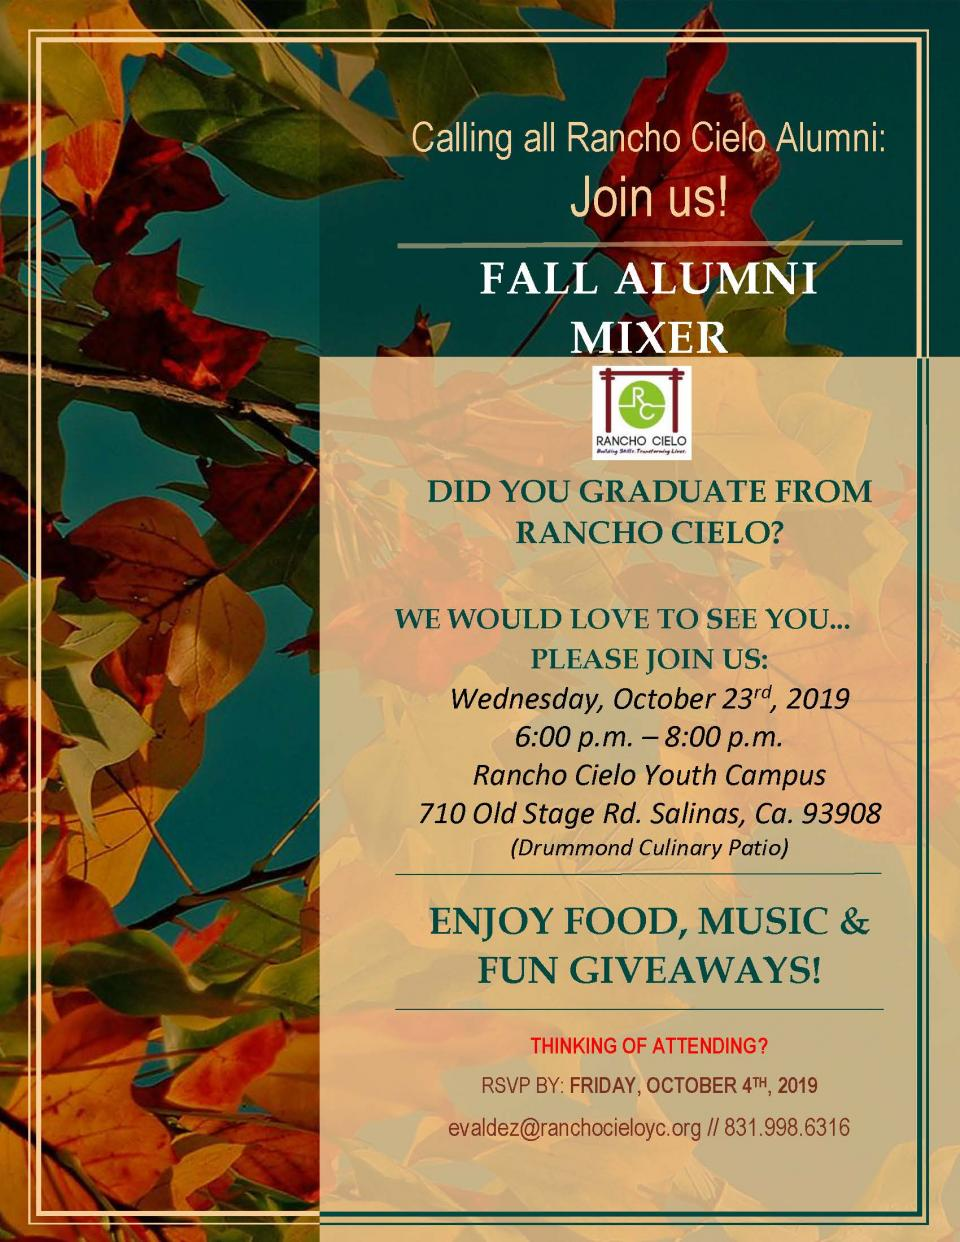 Fall Alumni Mixer on Oct 23, 6-8pm at Rancho Cielo